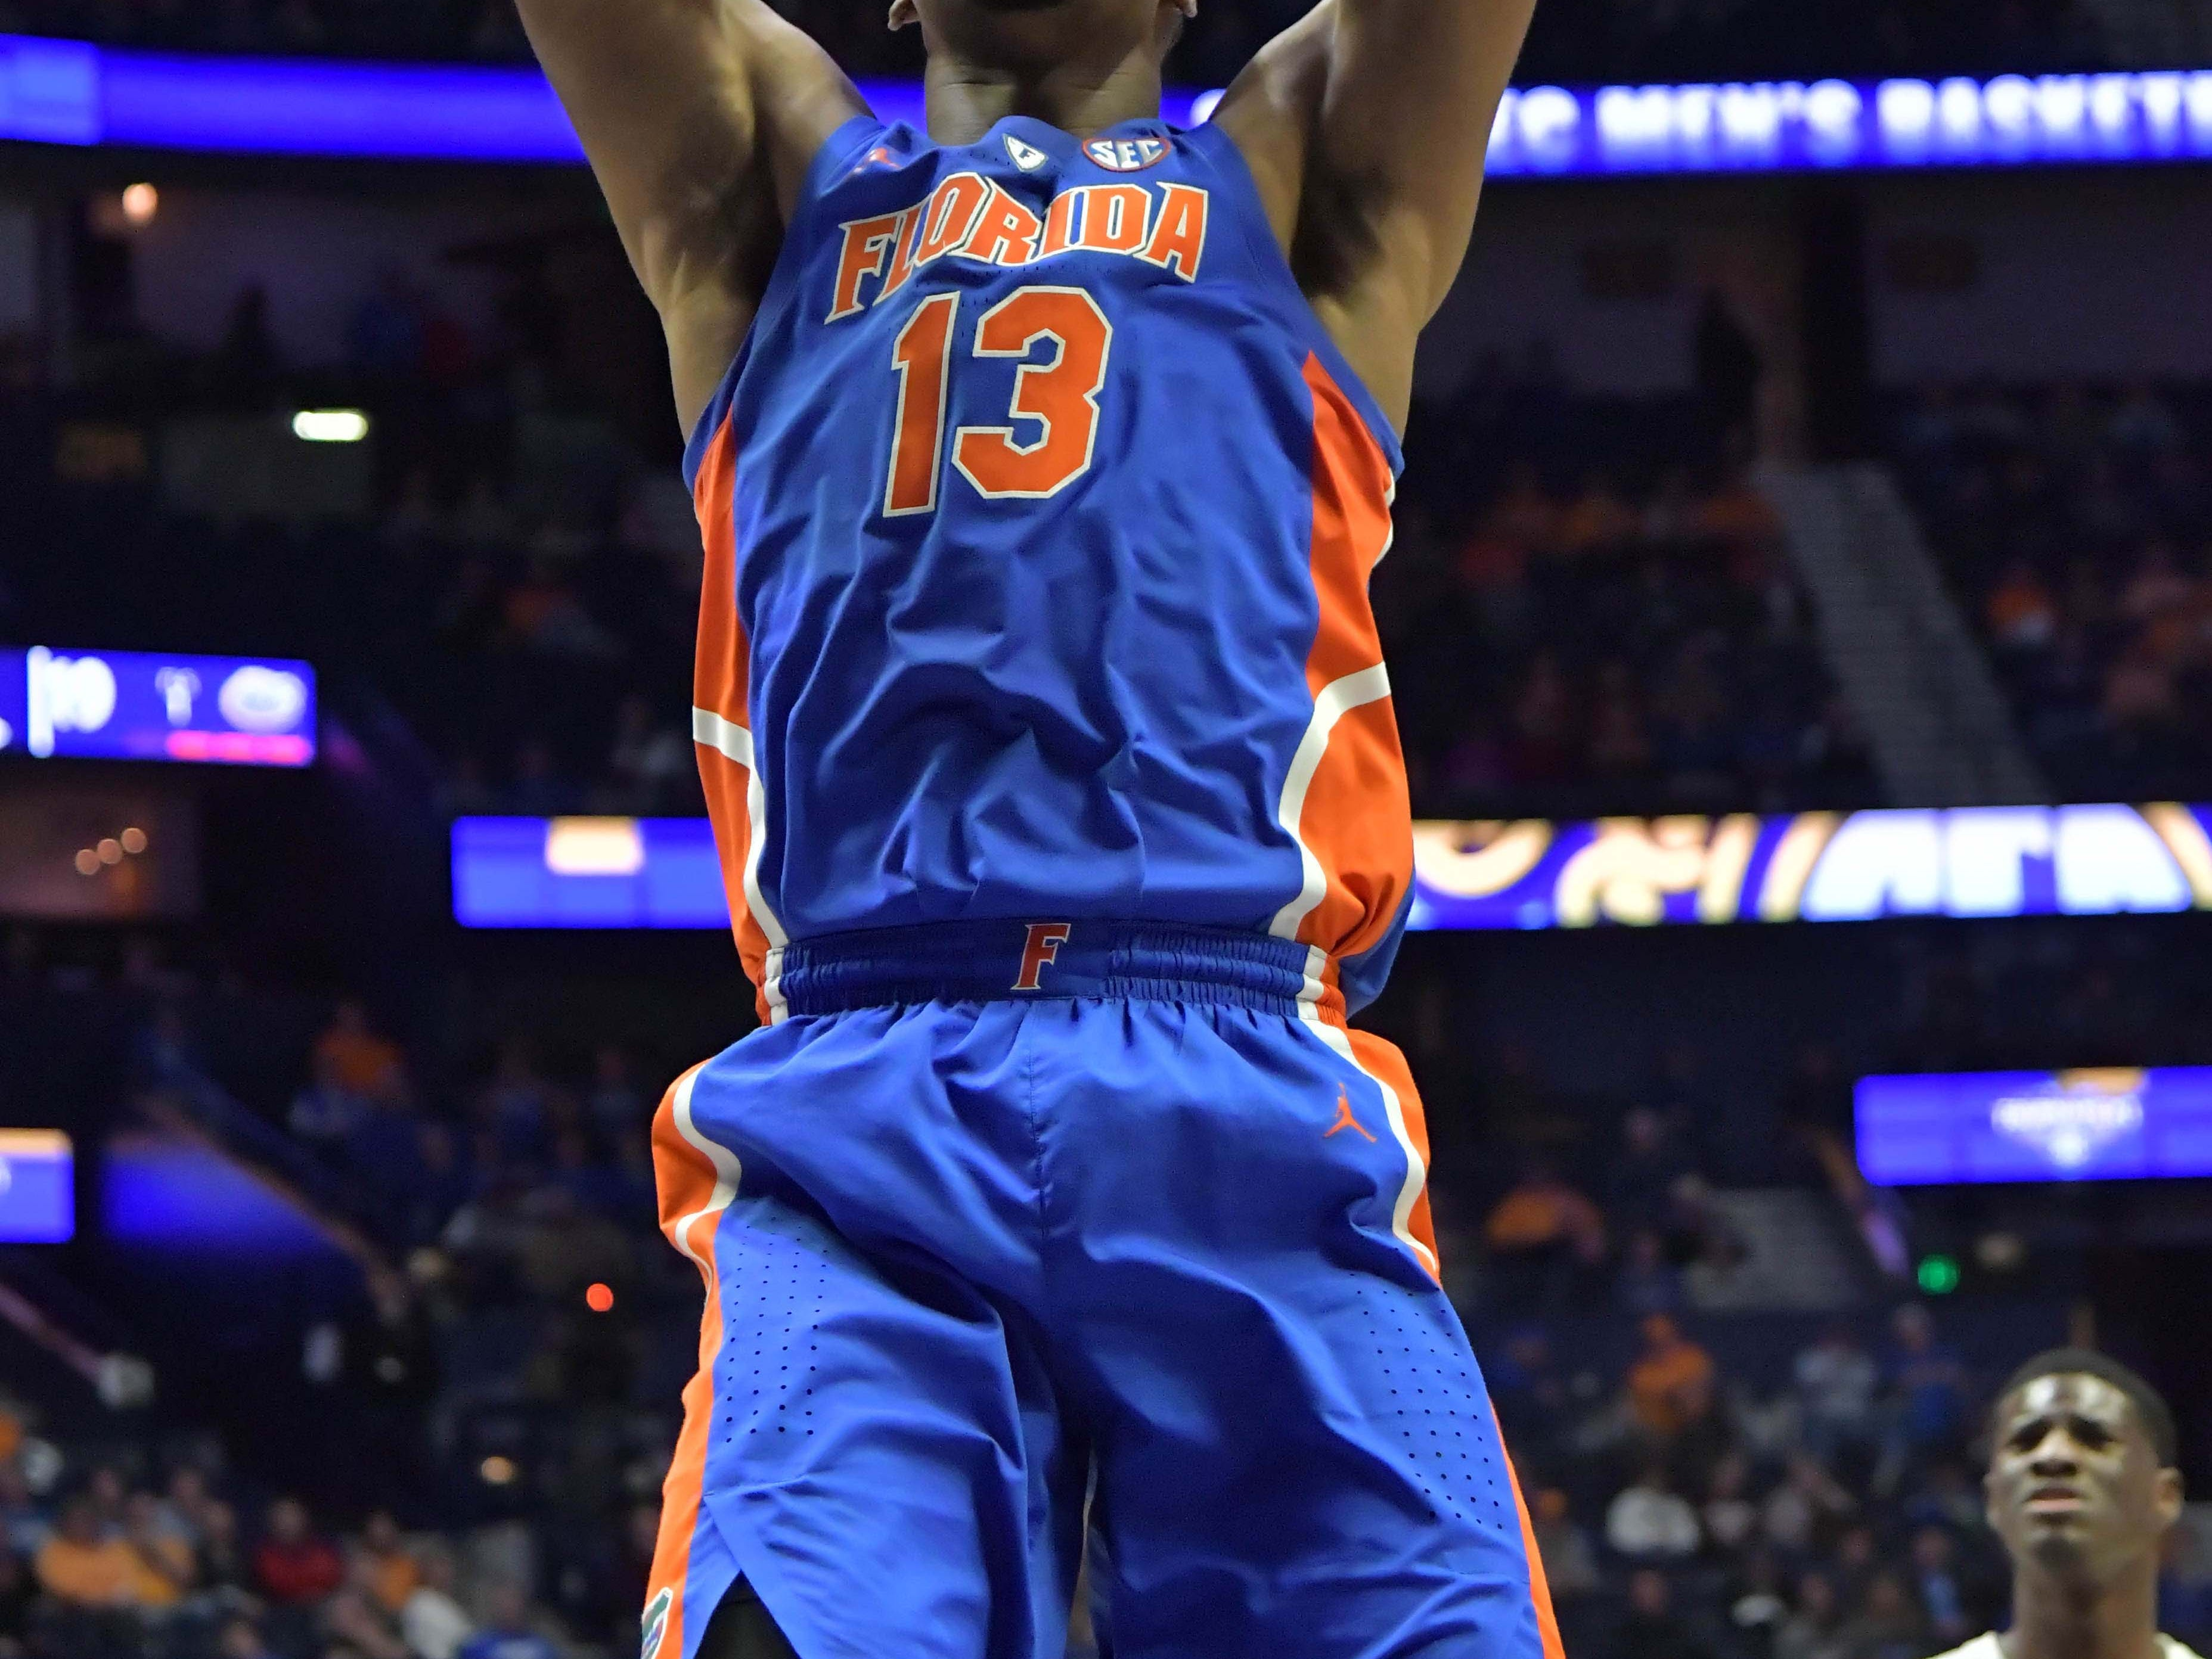 Mar 16, 2019; Nashville, TN, USA; Florida Gators center Kevarrius Hayes (13) dunks the ball against the Auburn Tigers during the first half of game eleven in the SEC conference tournament at Bridgestone Arena. Mandatory Credit: Jim Brown-USA TODAY Sports